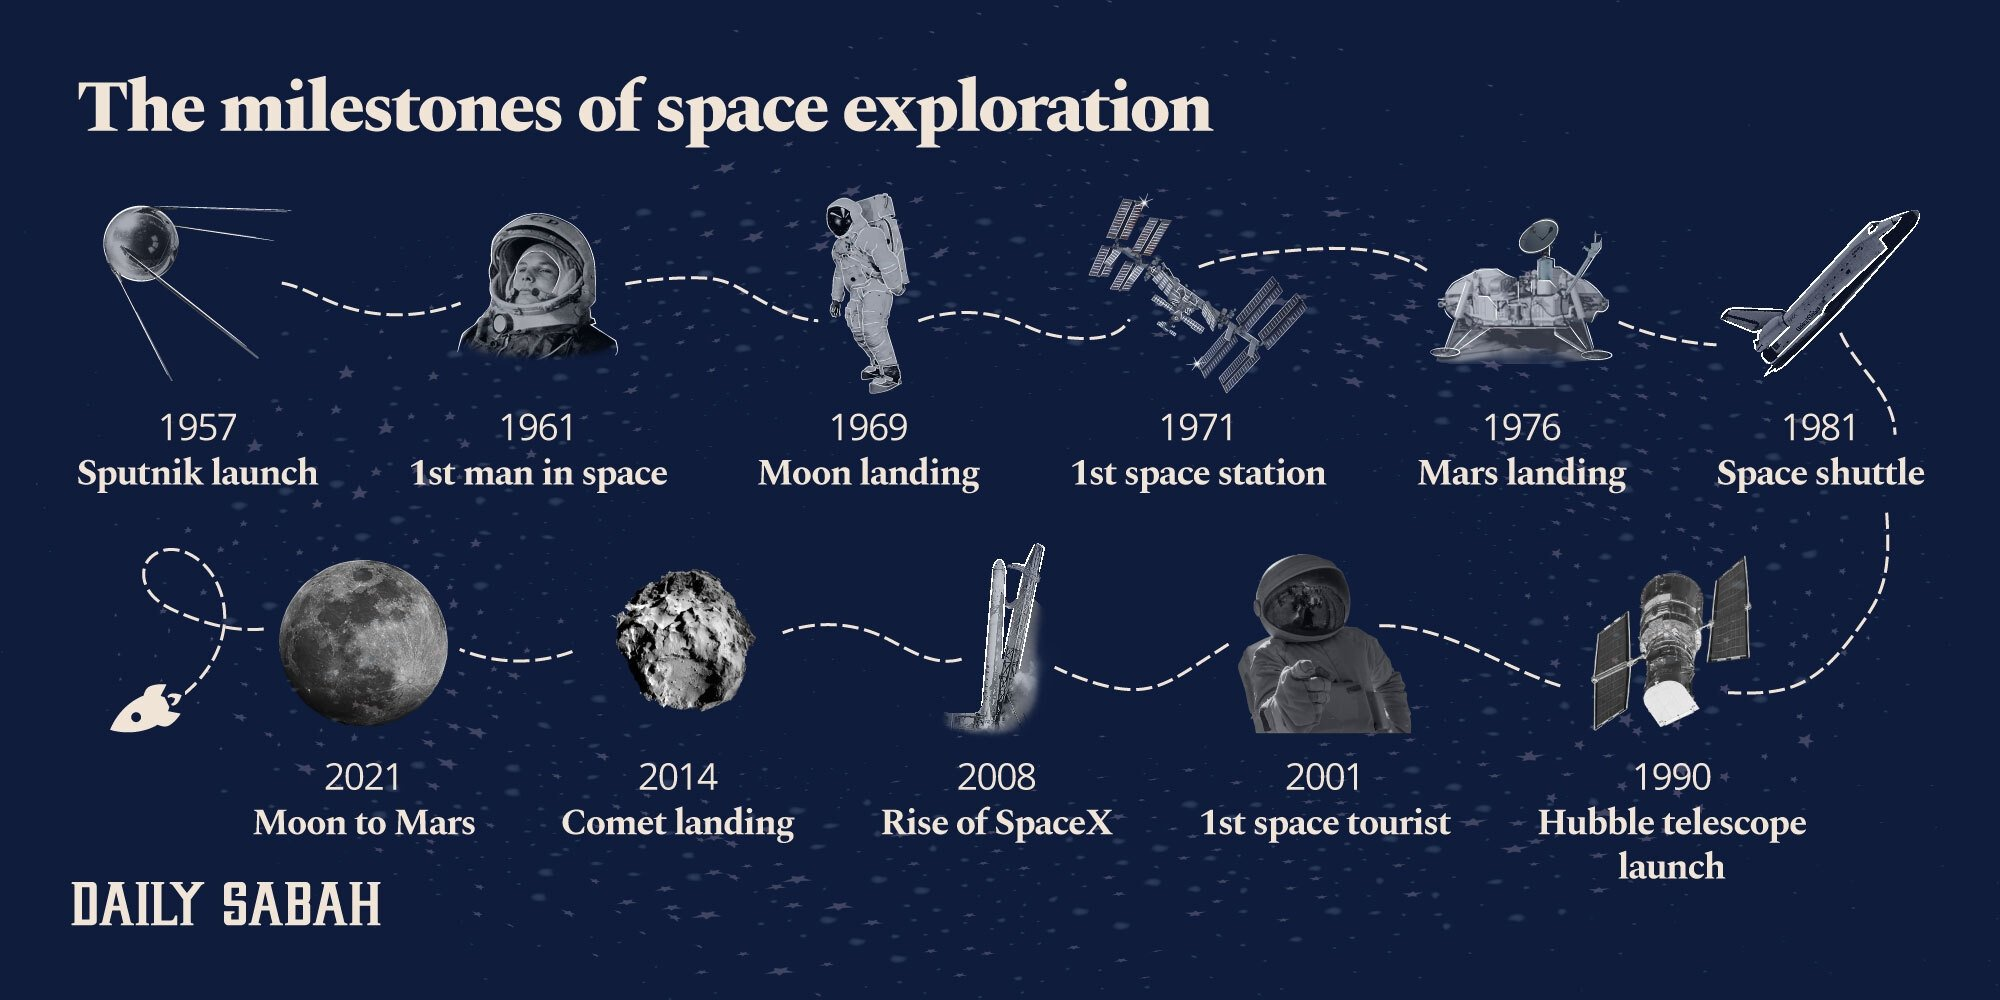 Looking back on milestones in humanity's space exploration journey. (Infographic by Daily Sabah)